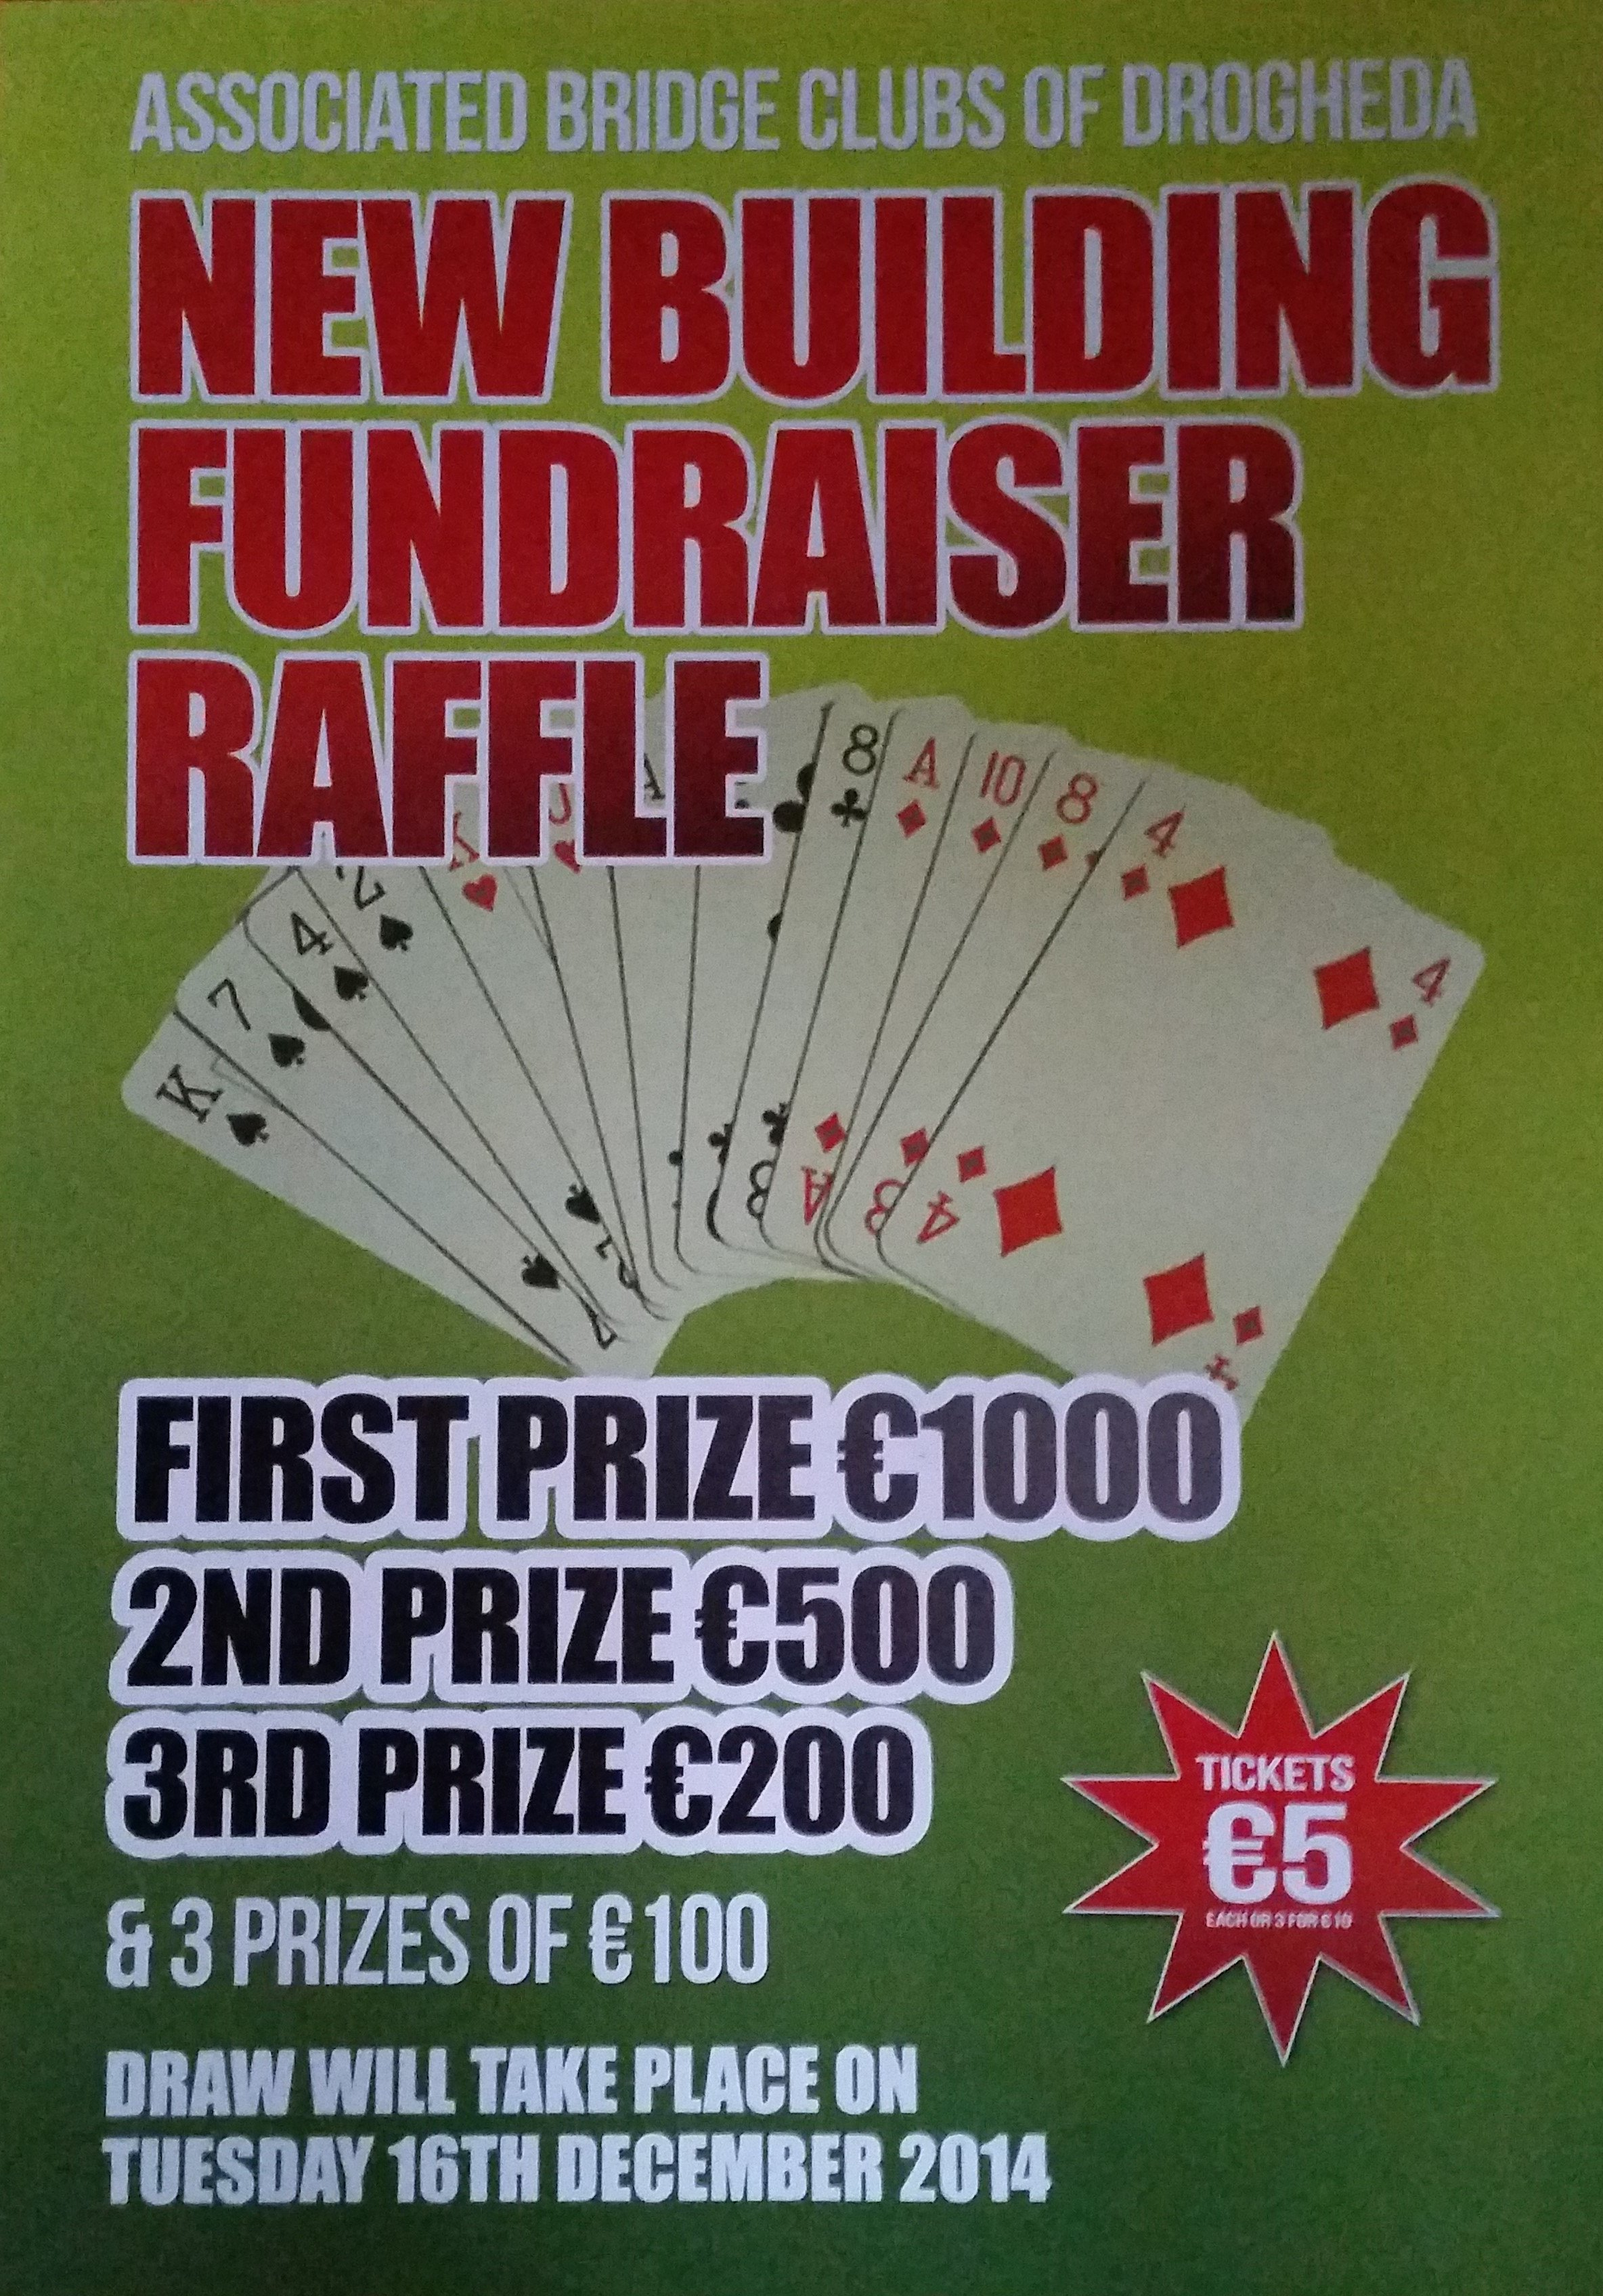 New Building Fundraiser Raffle